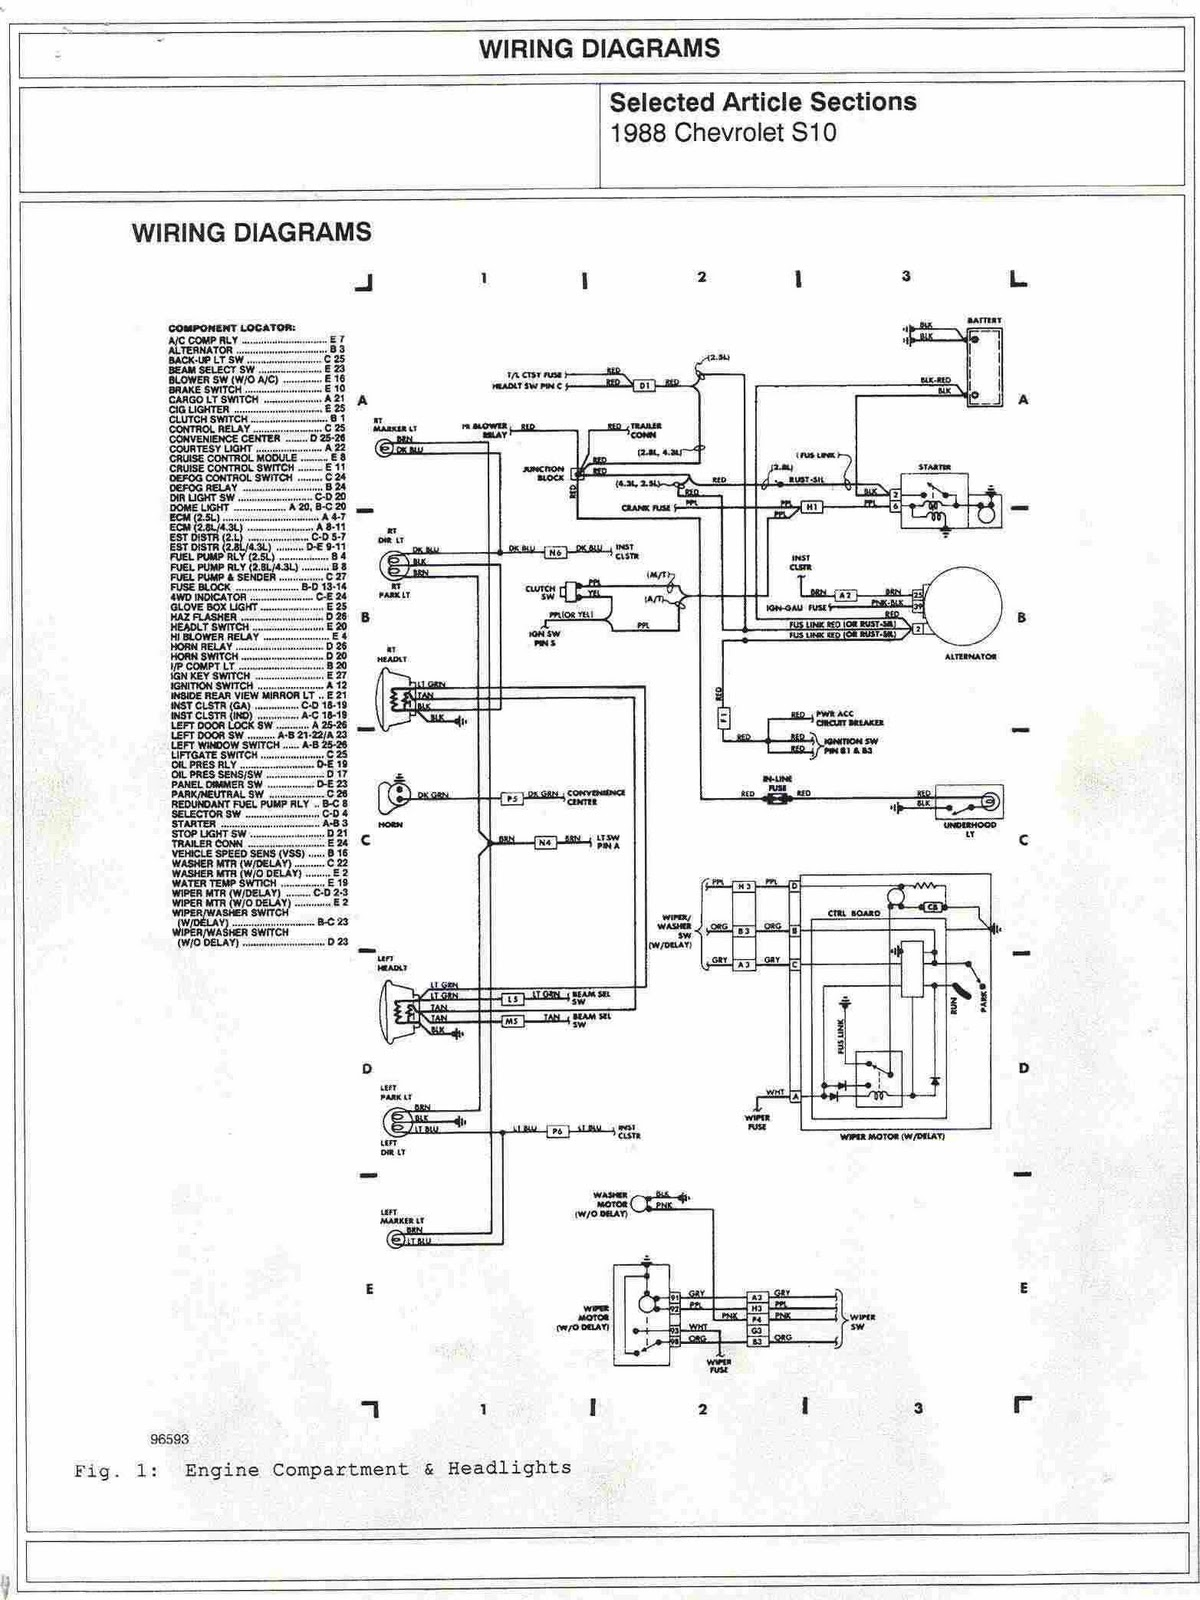 1988+Chevrolet+S10+Engine+Compartment+and+Headlights+Wiring+Diagrams 95 s10 wiring diagram 95 tahoe wiring diagram \u2022 wiring diagrams  at mifinder.co